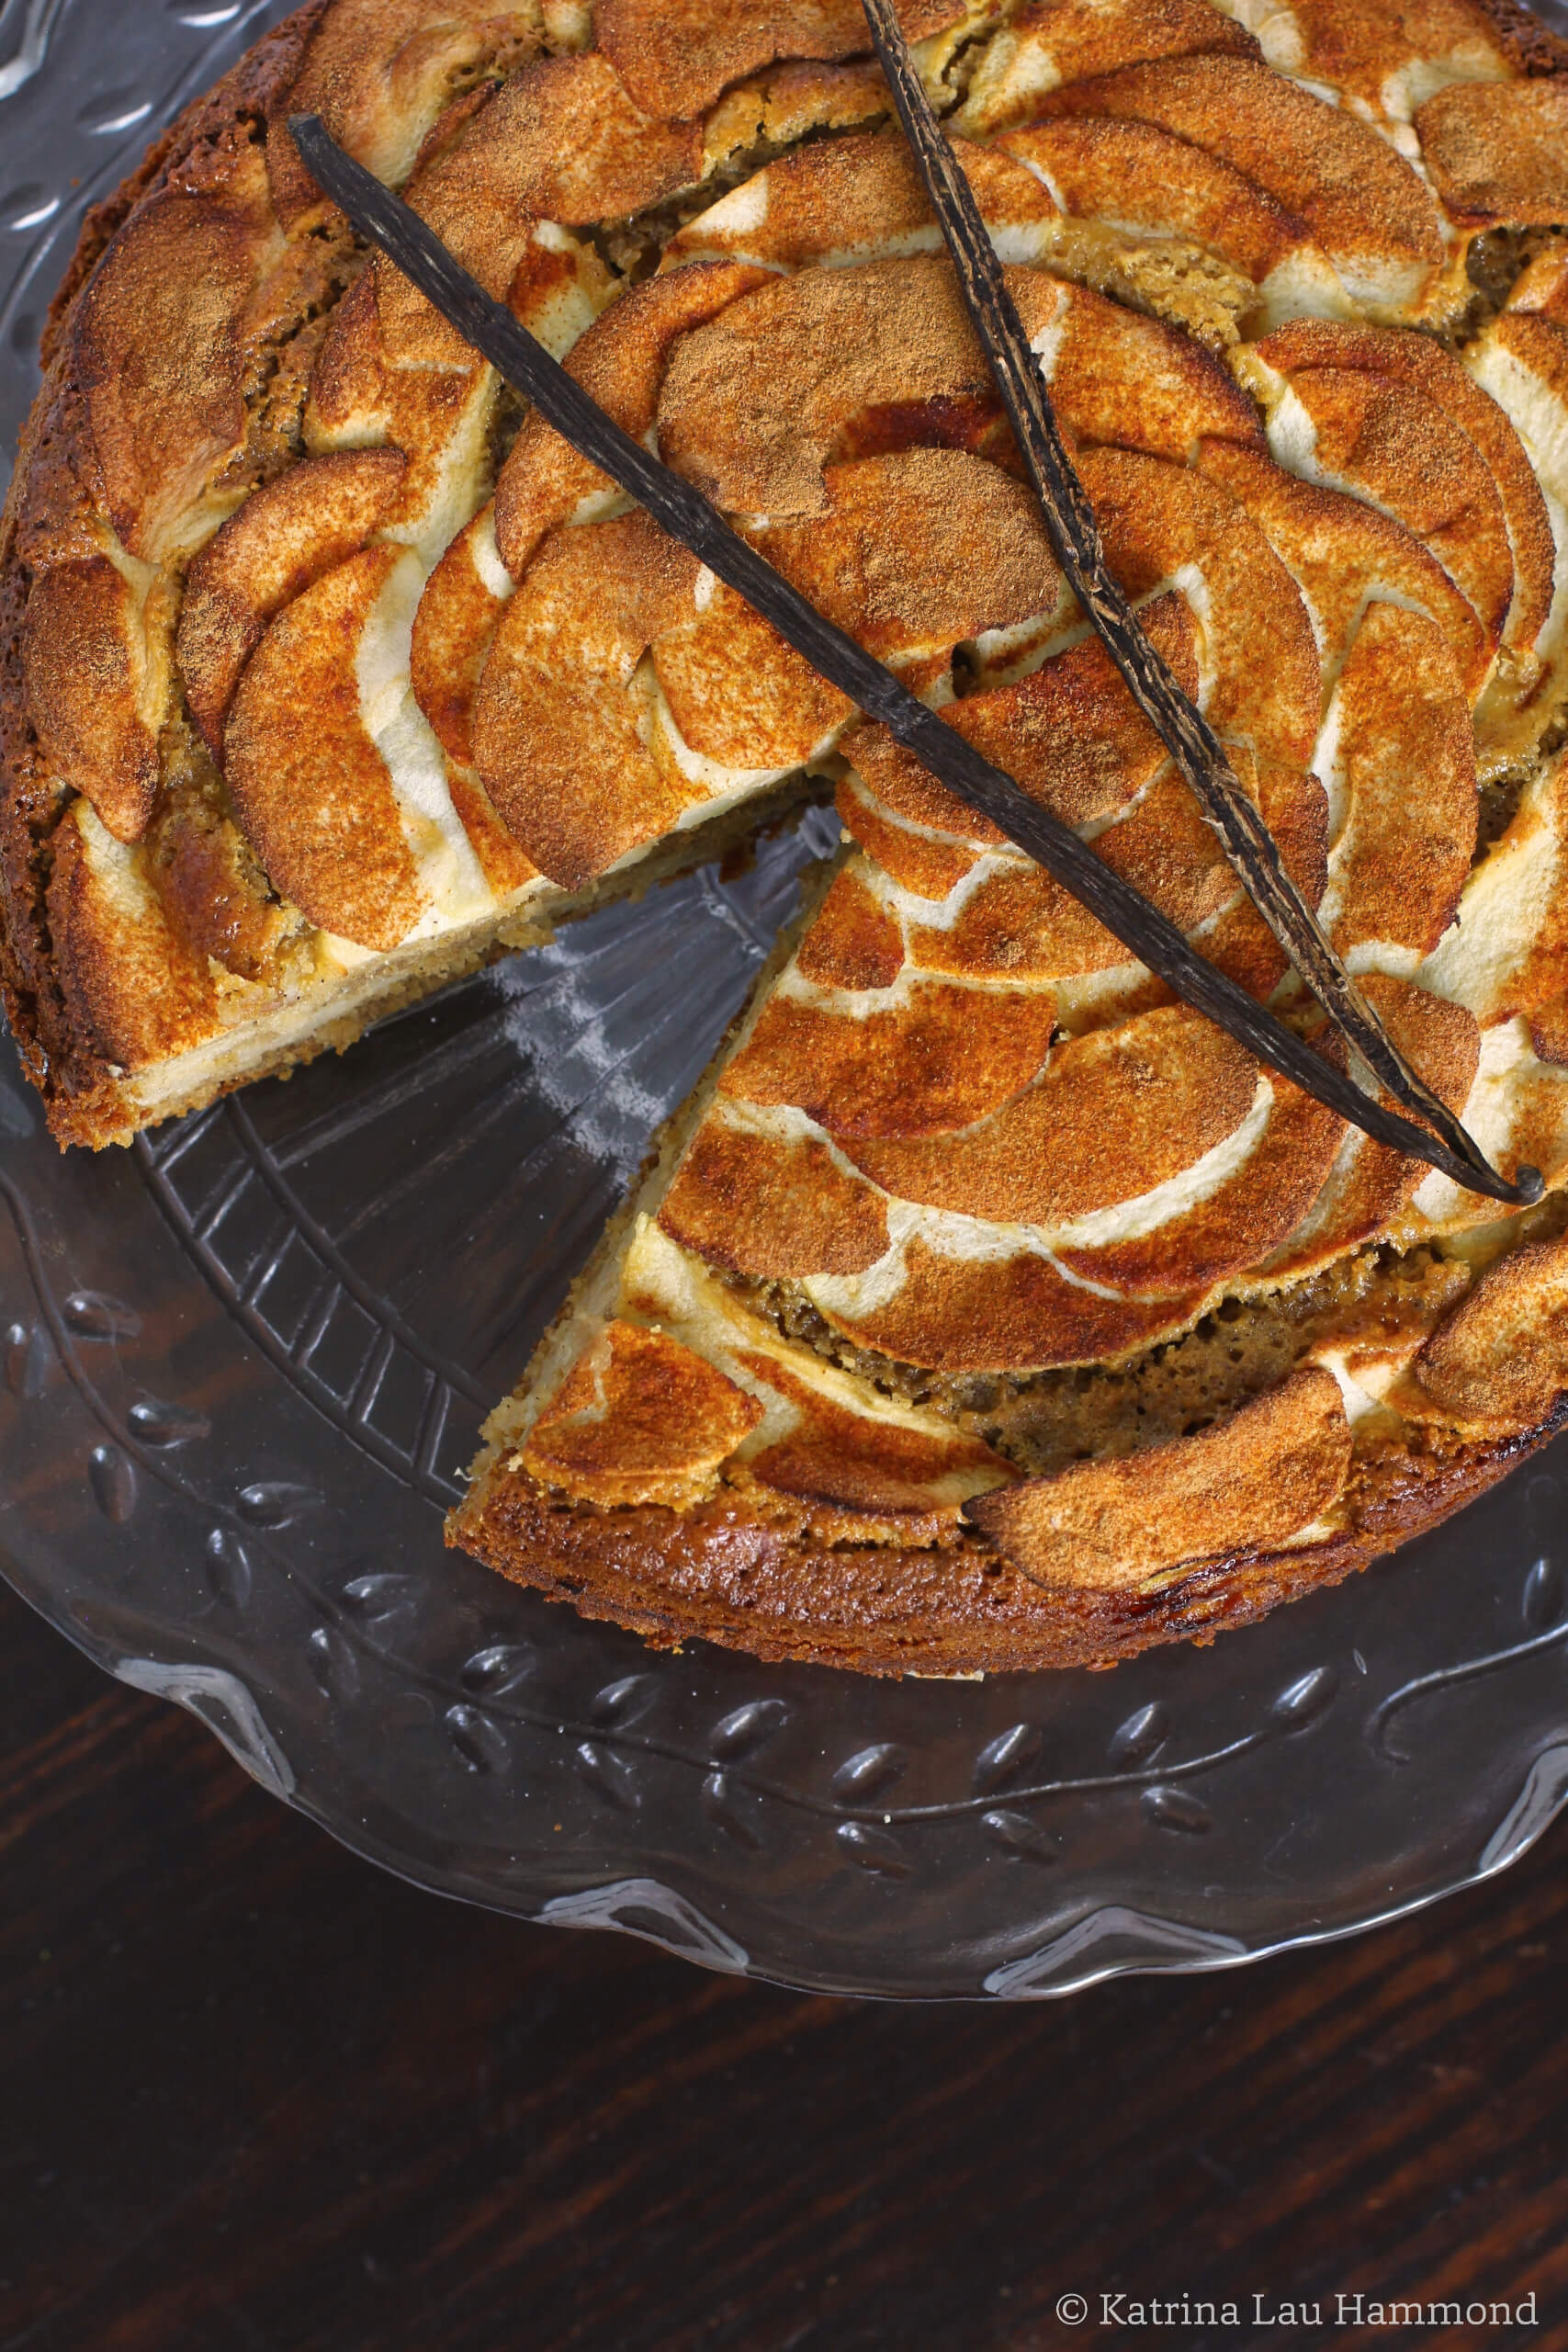 Apple, barley and oatmeal cake